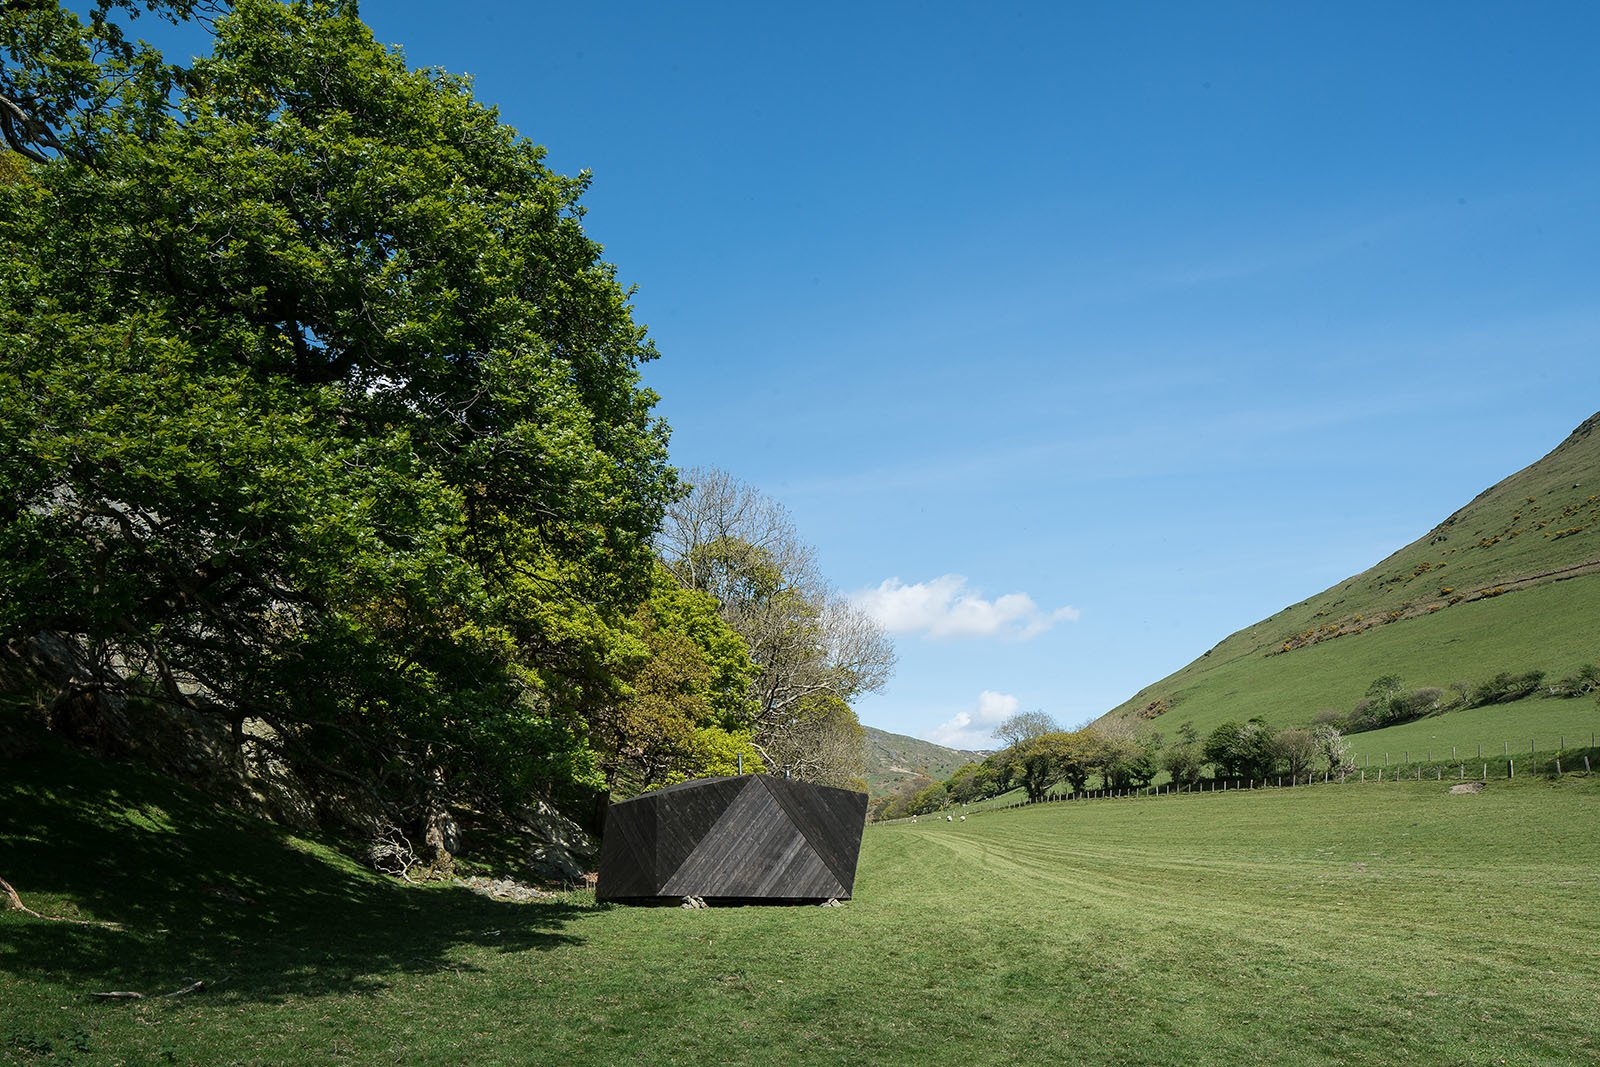 Photo 8 of 11 in Tour One of Epic Retreat's Tiny Pop-Up Hotel Cabins in the Welsh Countryside